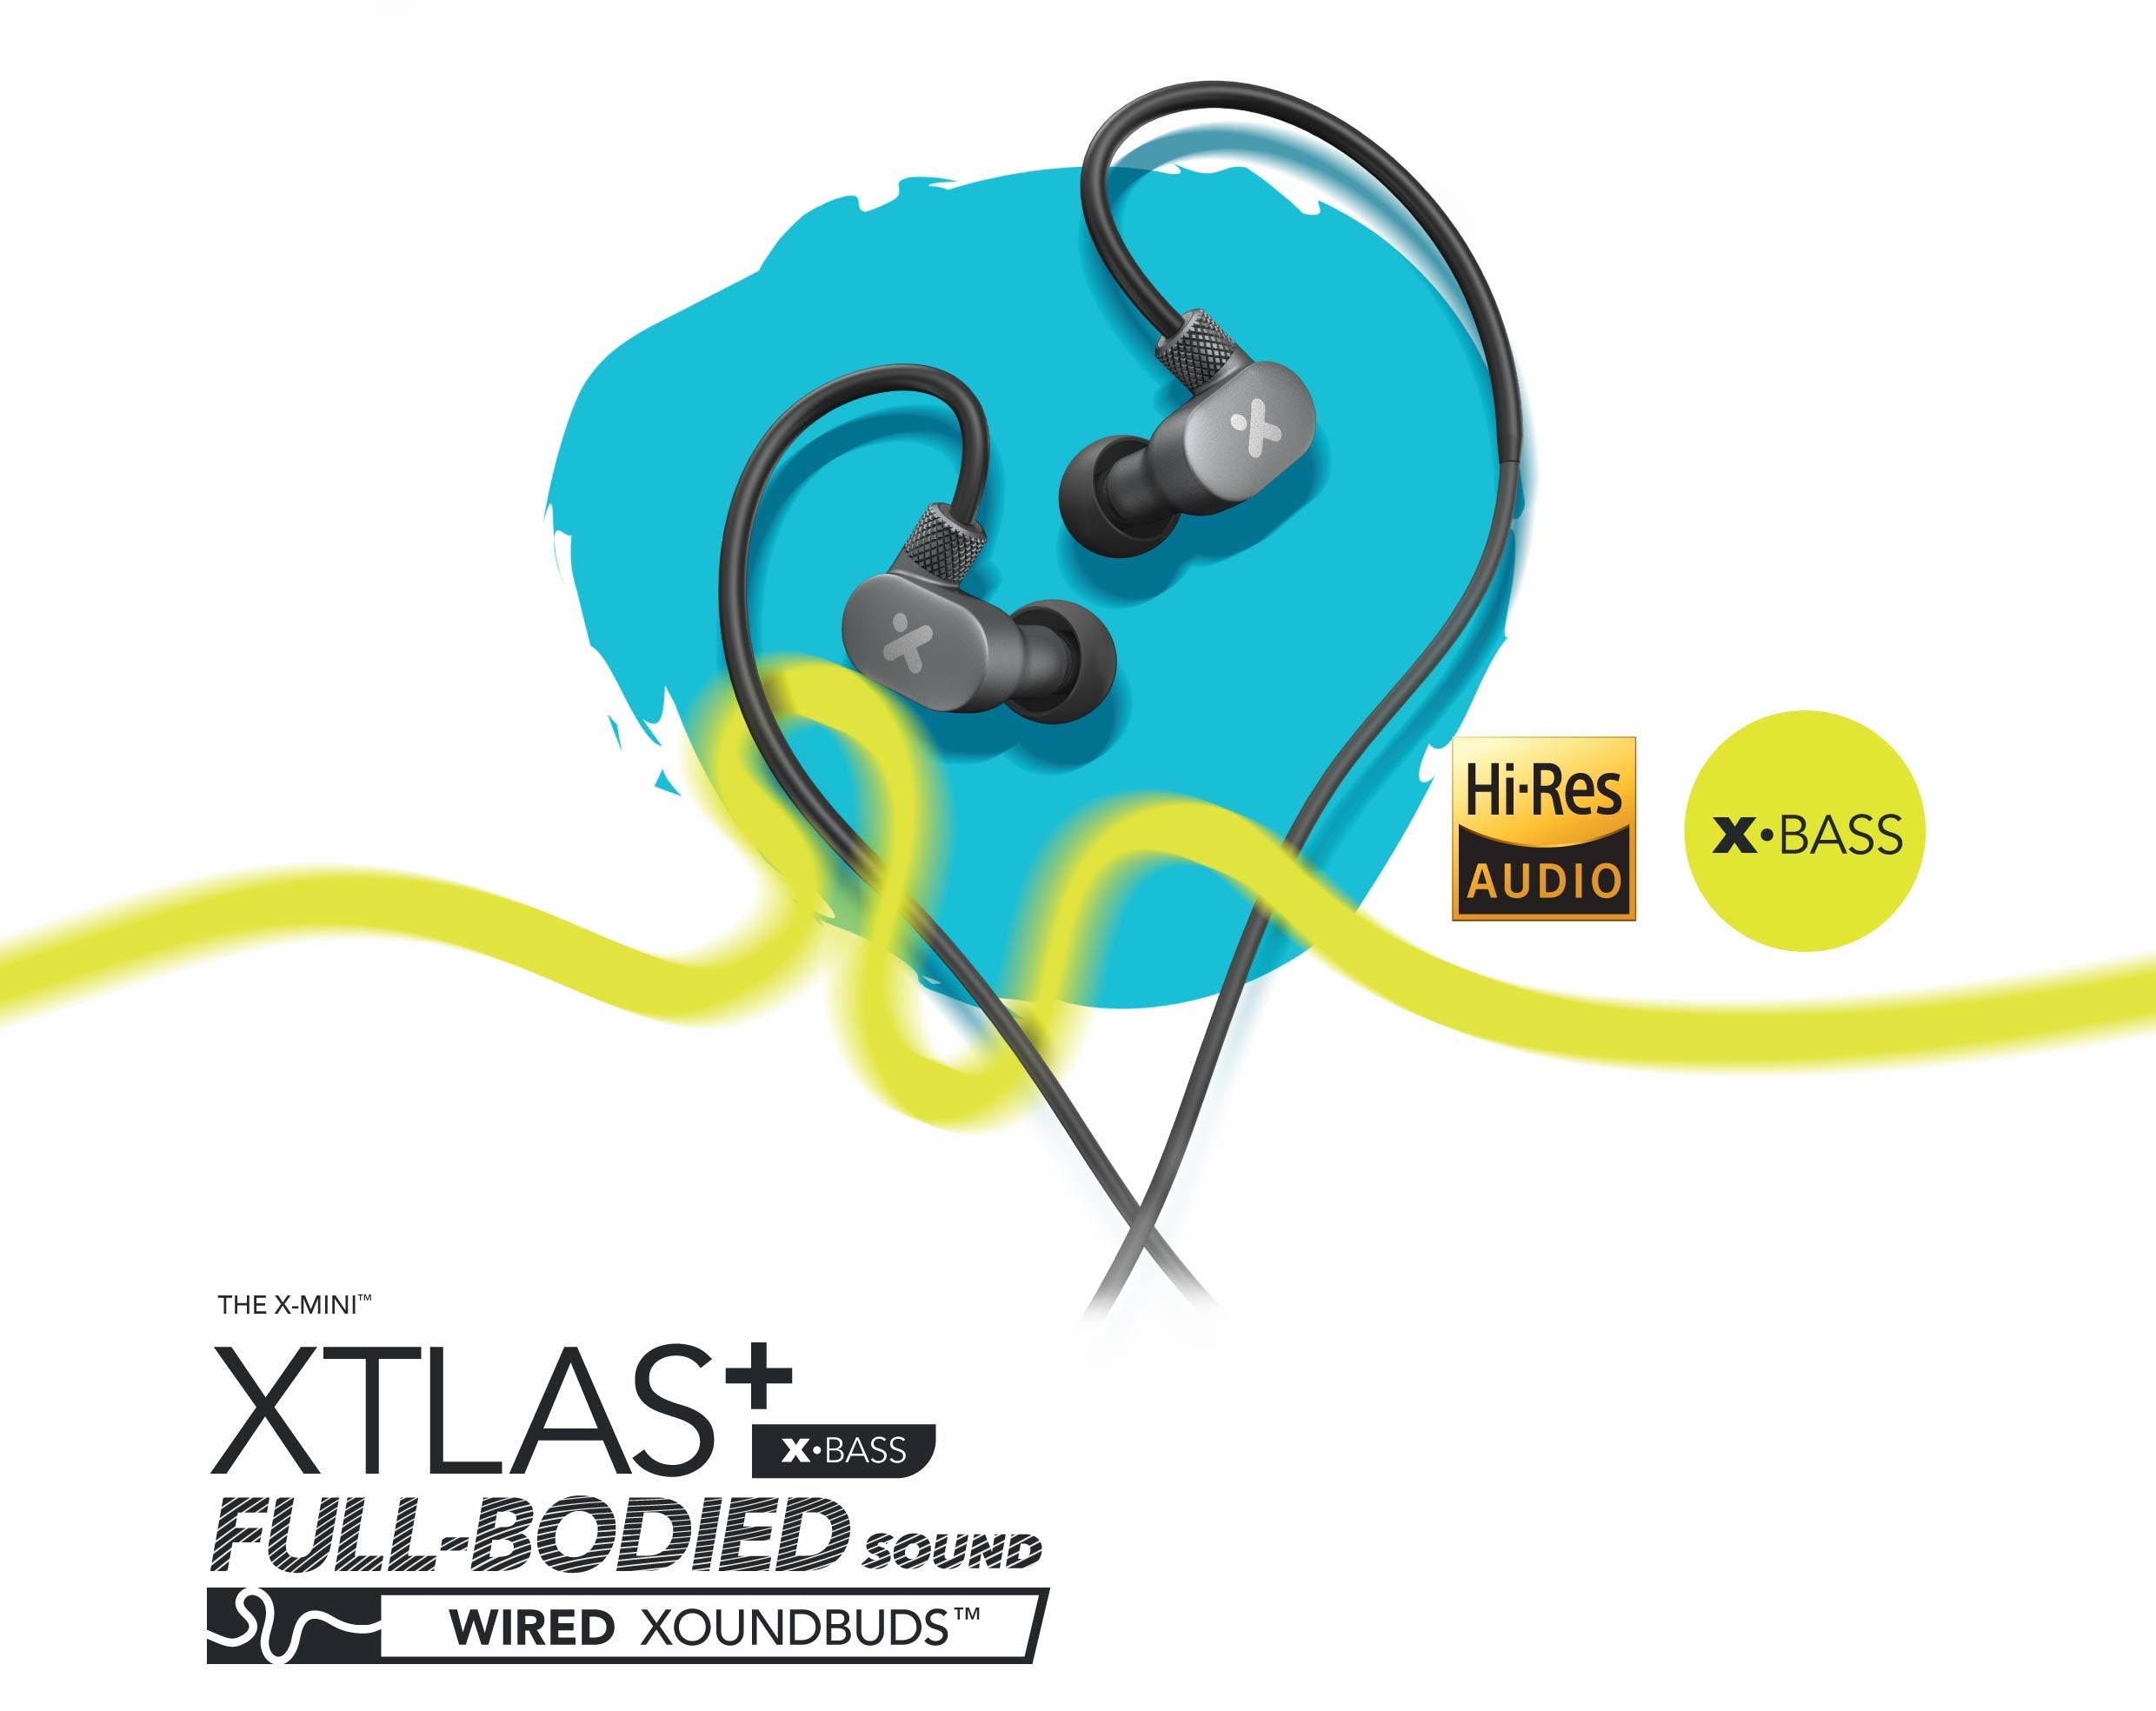 X-mini-Xtlas_-Full-Bodied-Wired-Xoundbuds-Hybrid-Triple-Driver-IEM-X-BASS